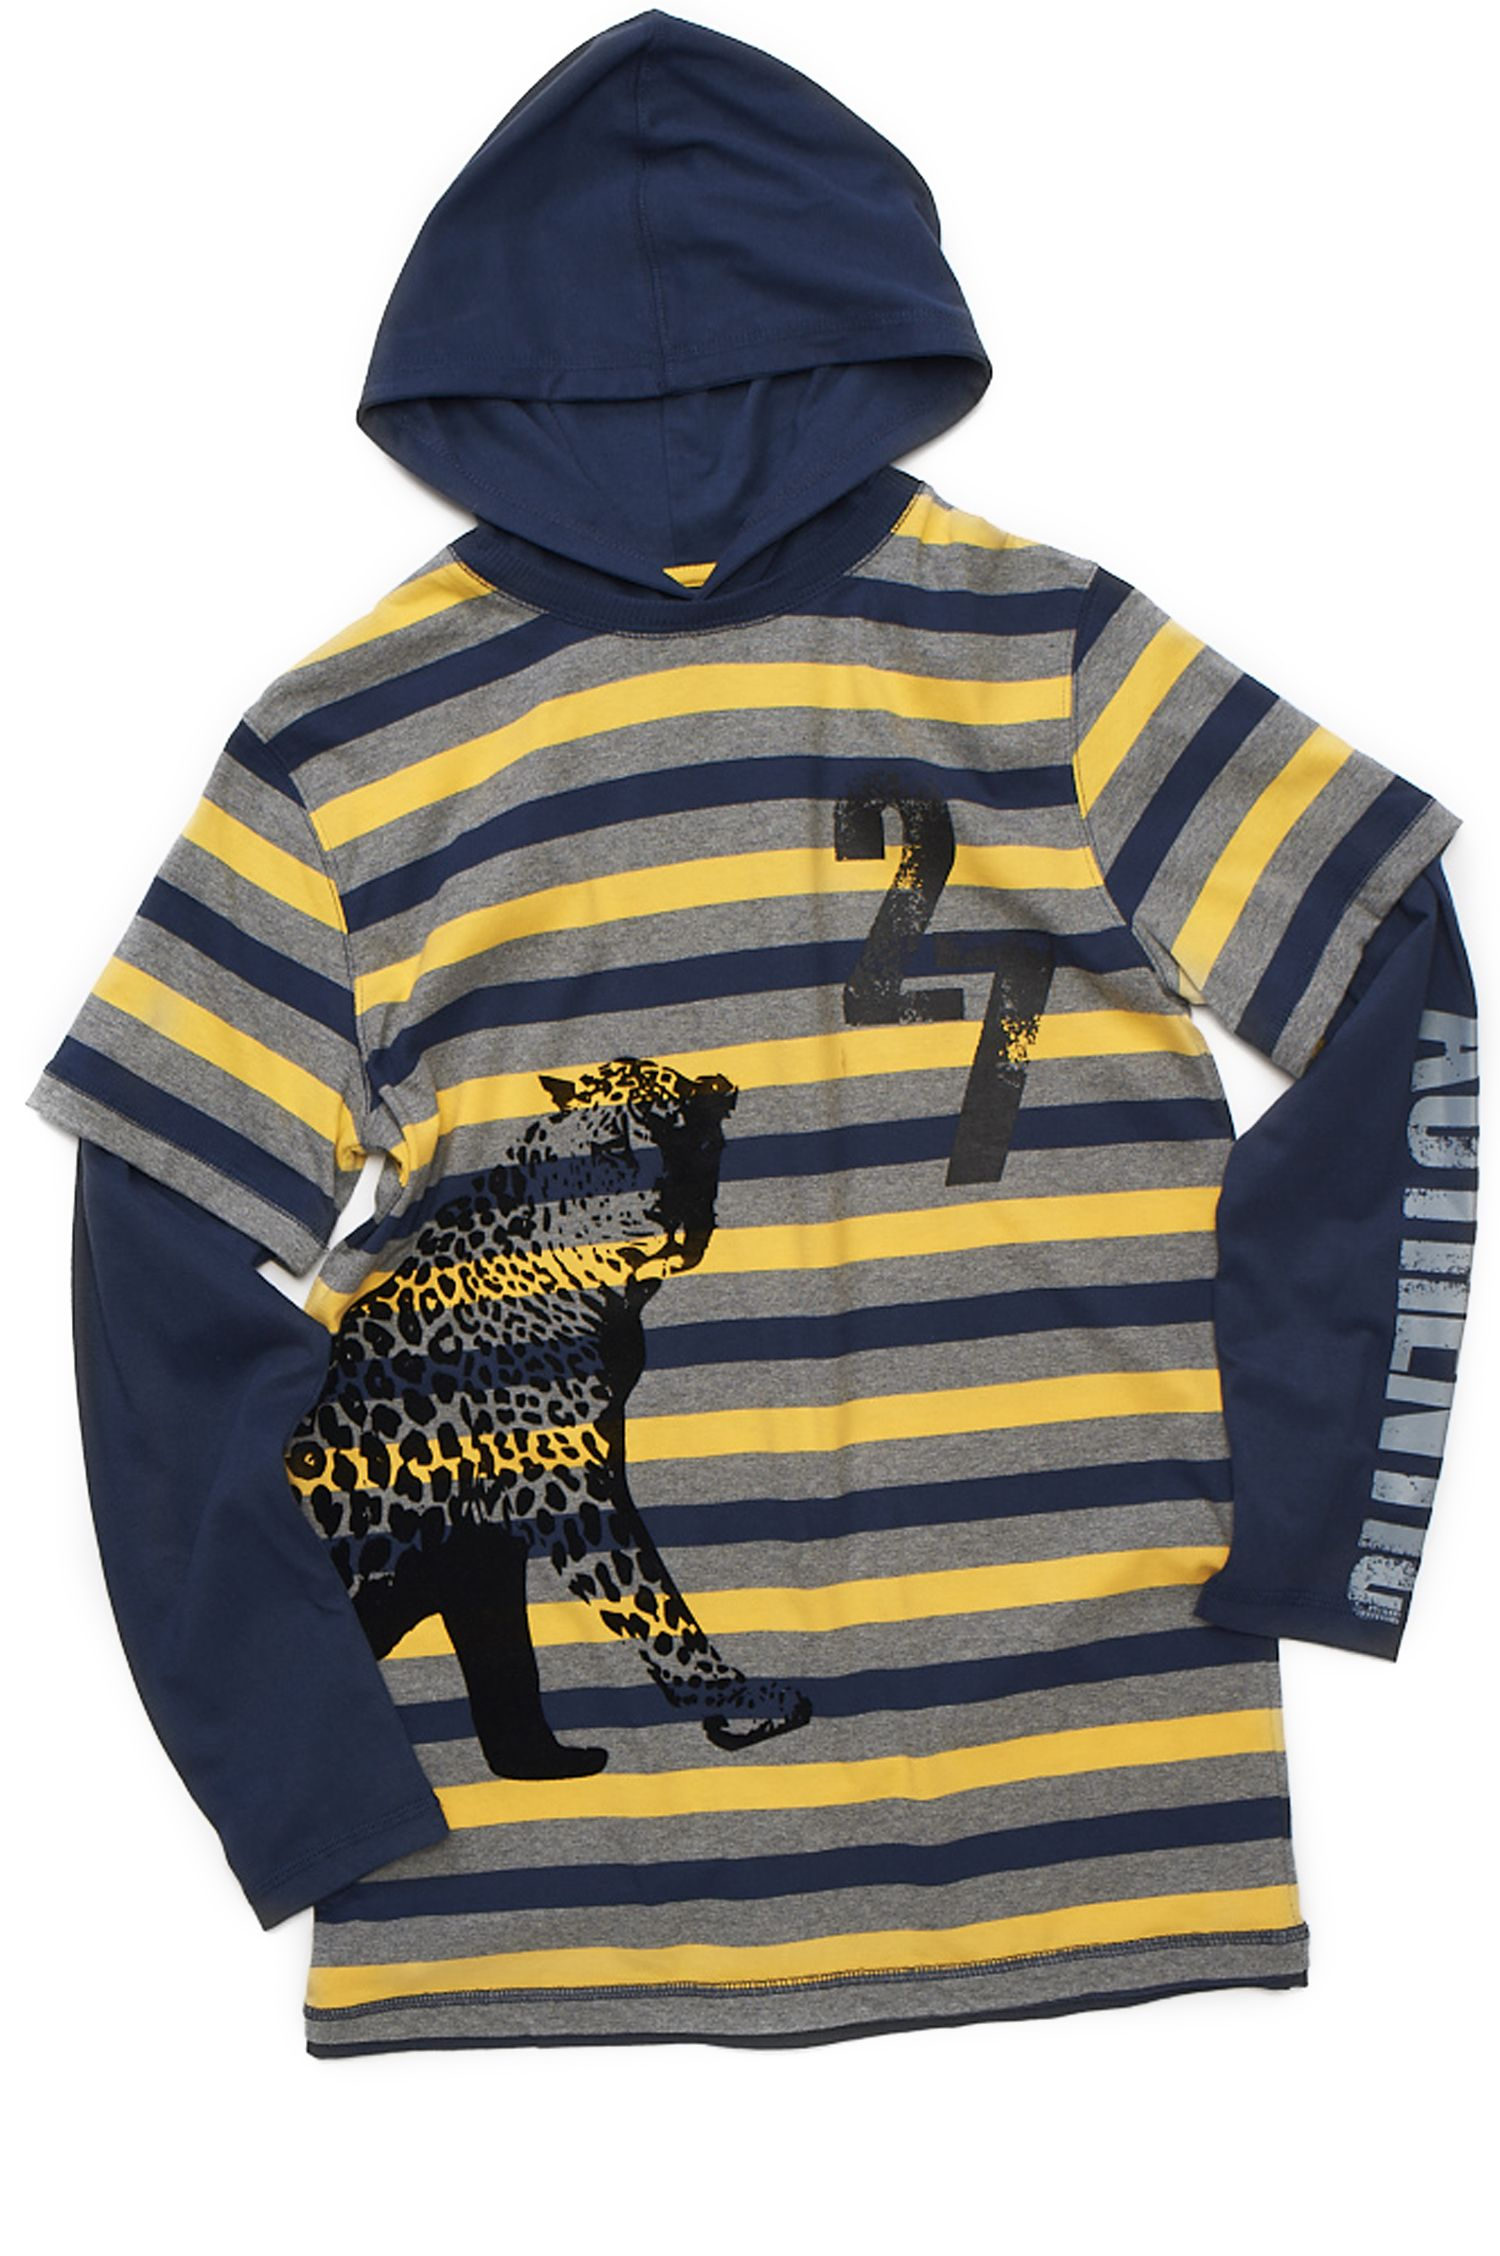 #MeijerKidsLooks and #BacktoSchool. Boys Authentic Pullover (available only in stores) Click image to see weekly ad